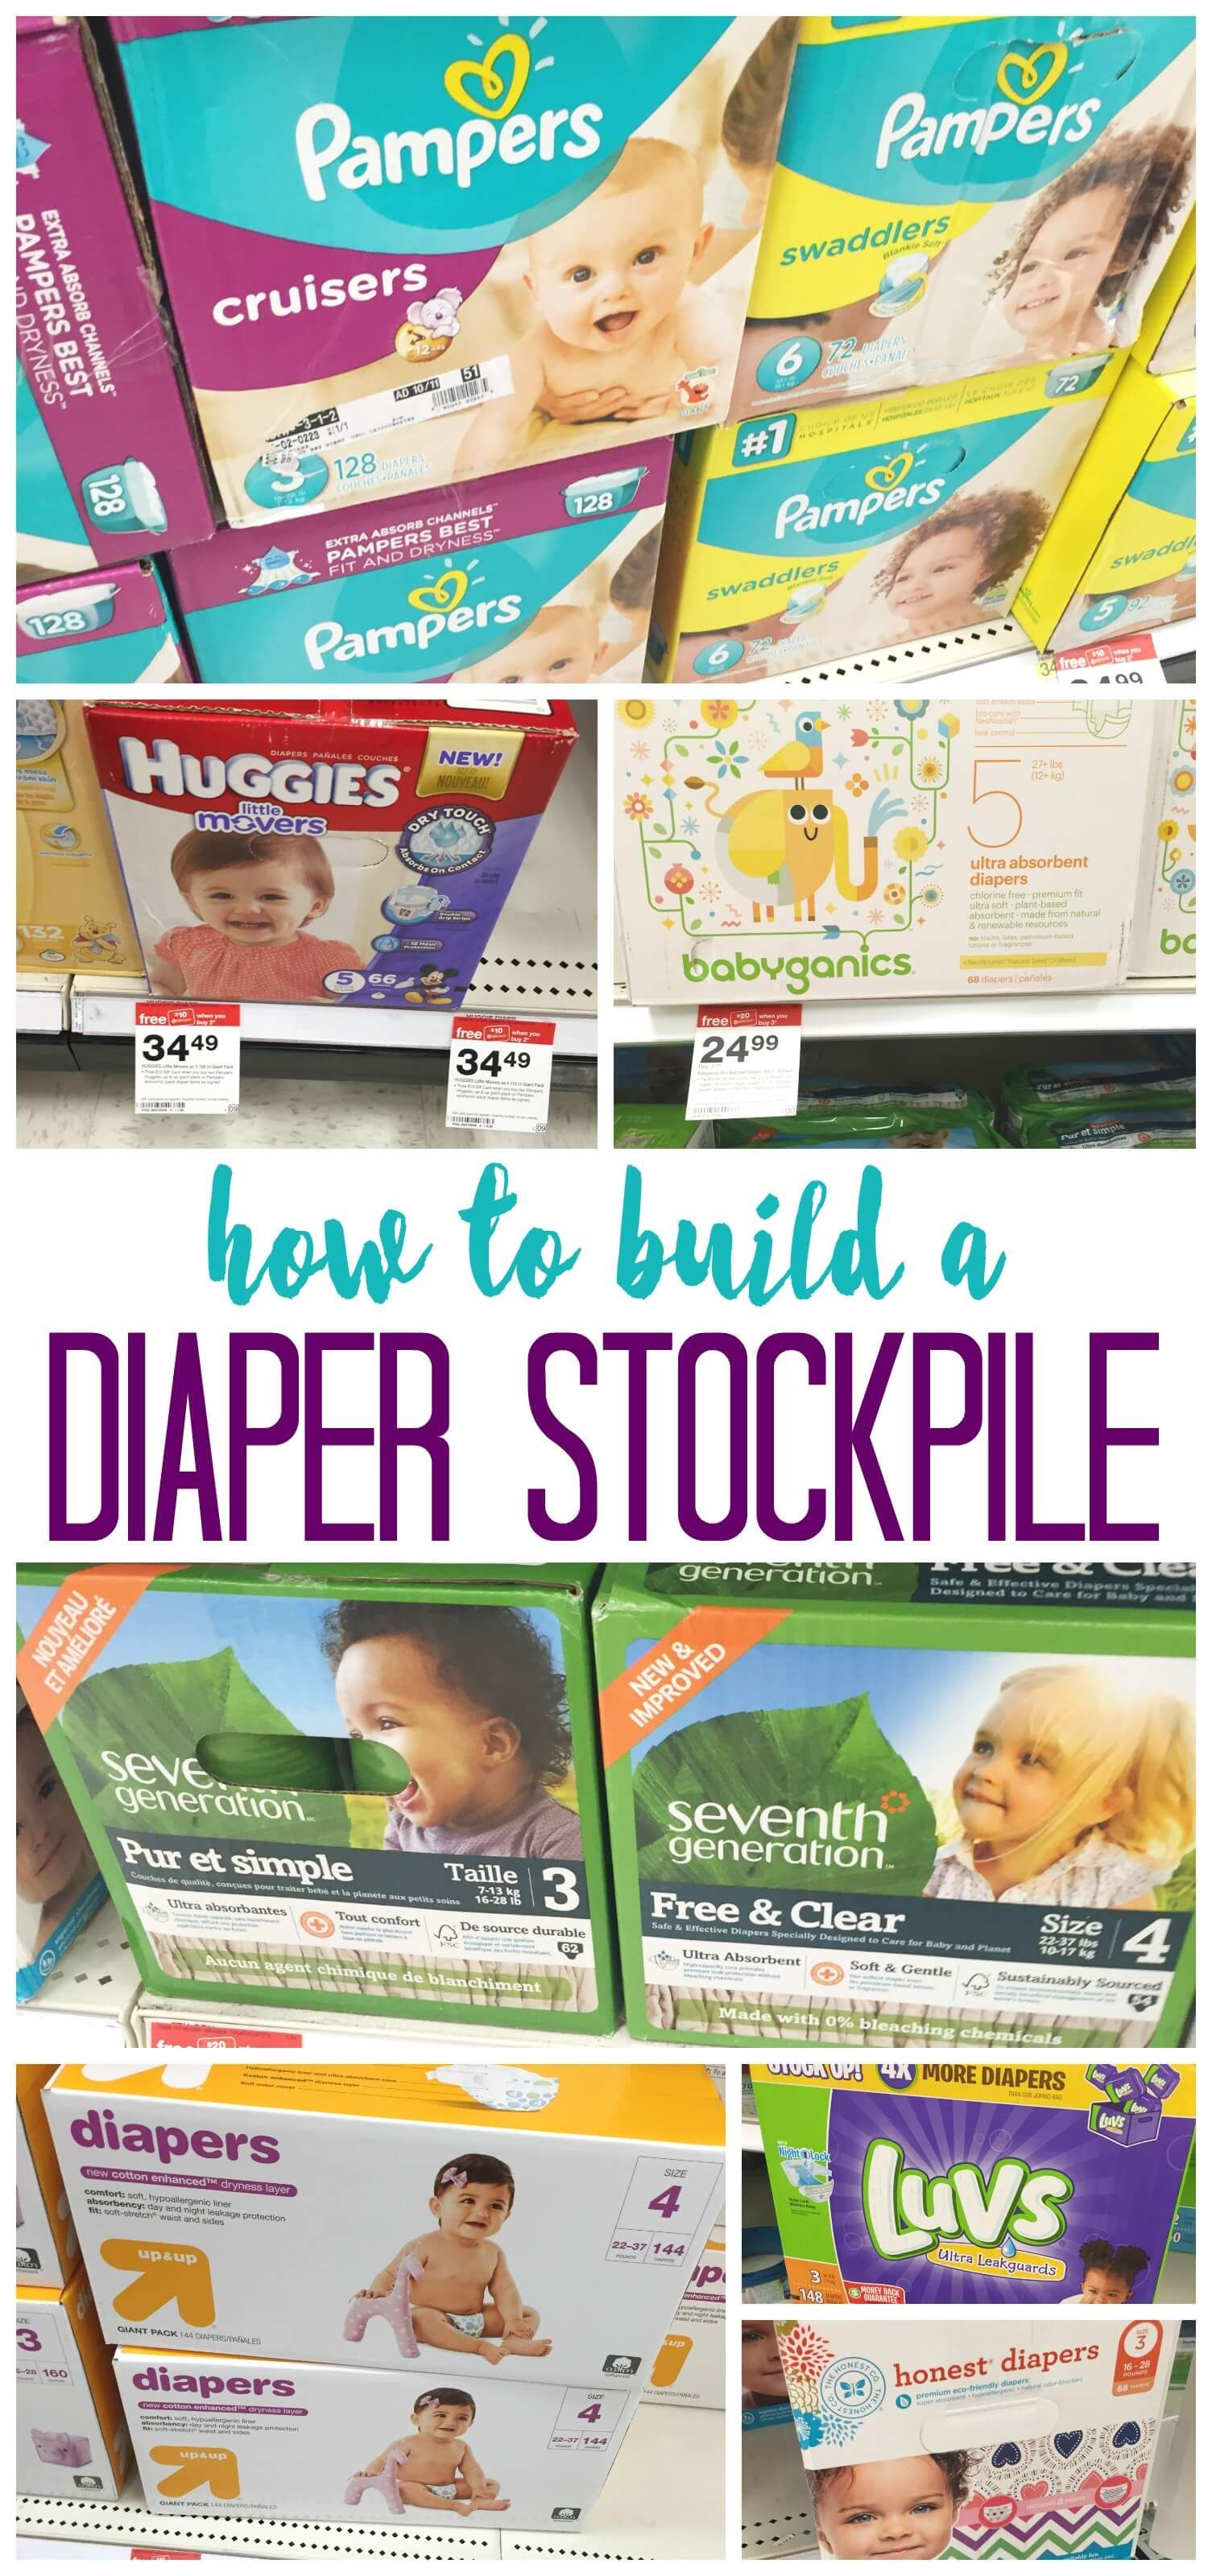 How To Build A Diaper Stockpile Diaper Stockpile Baby Coupons